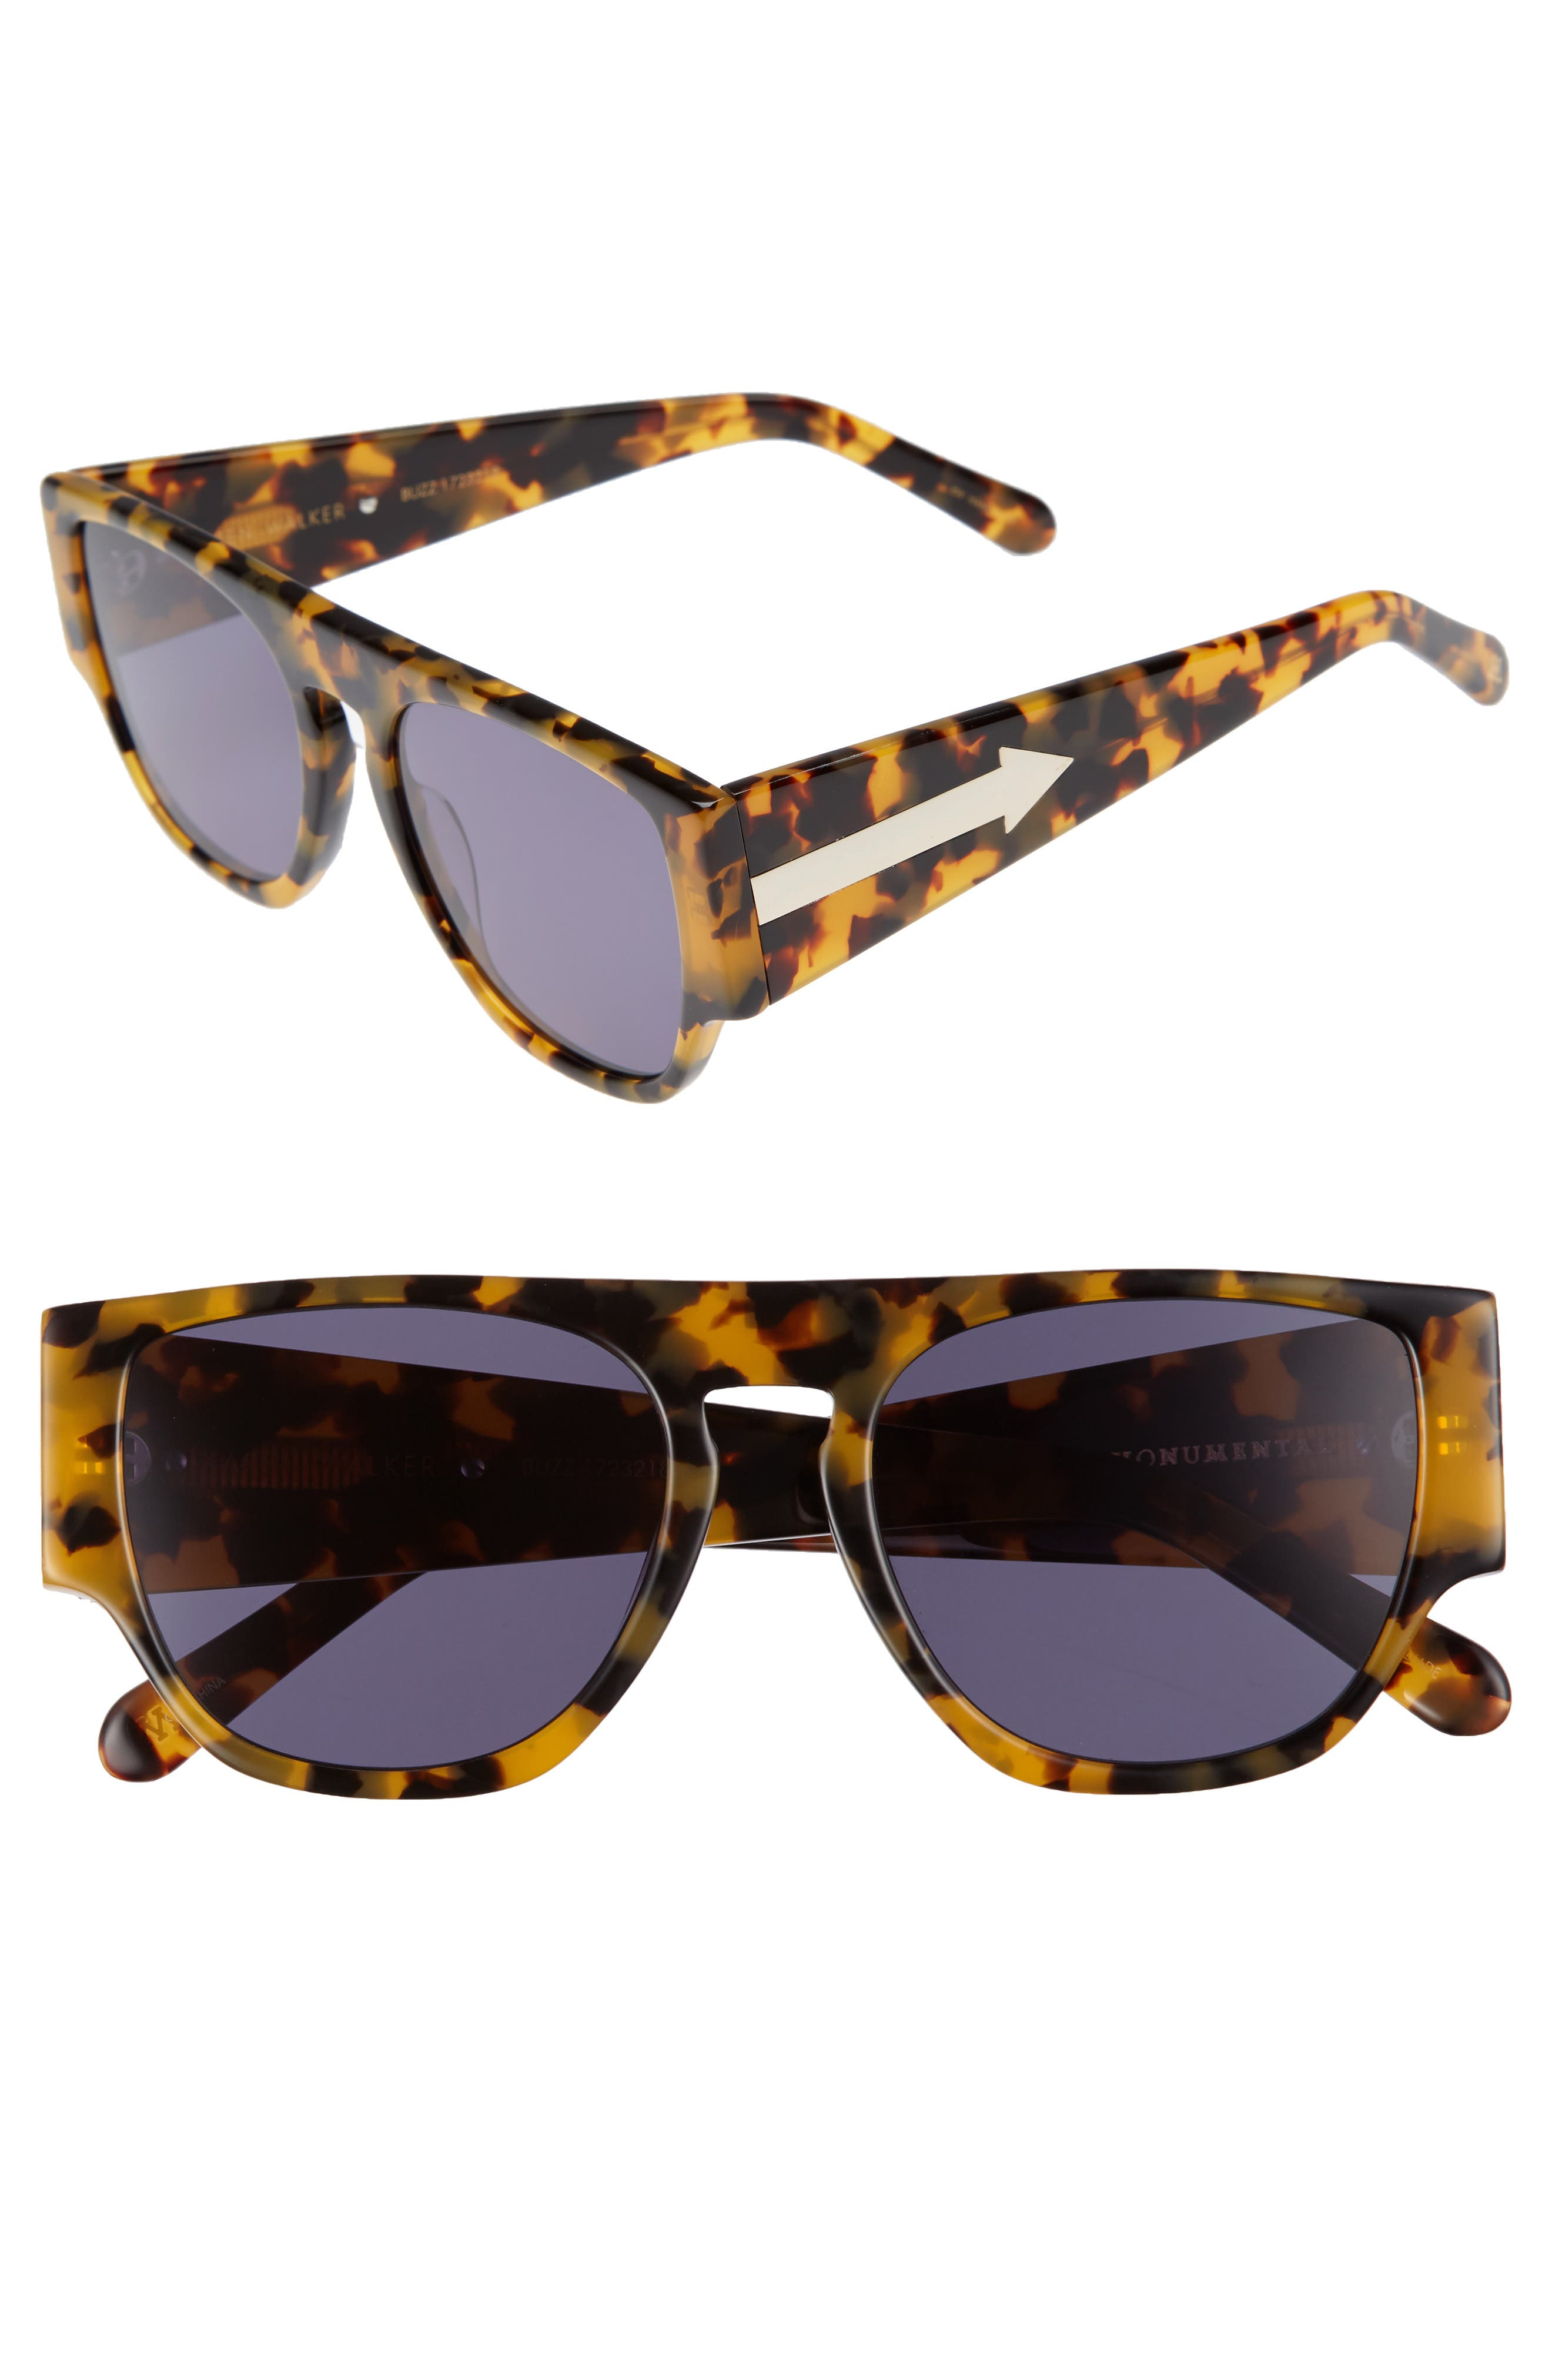 Karen Walker x Monumental Buzz 54mm Polarized Sunglasses